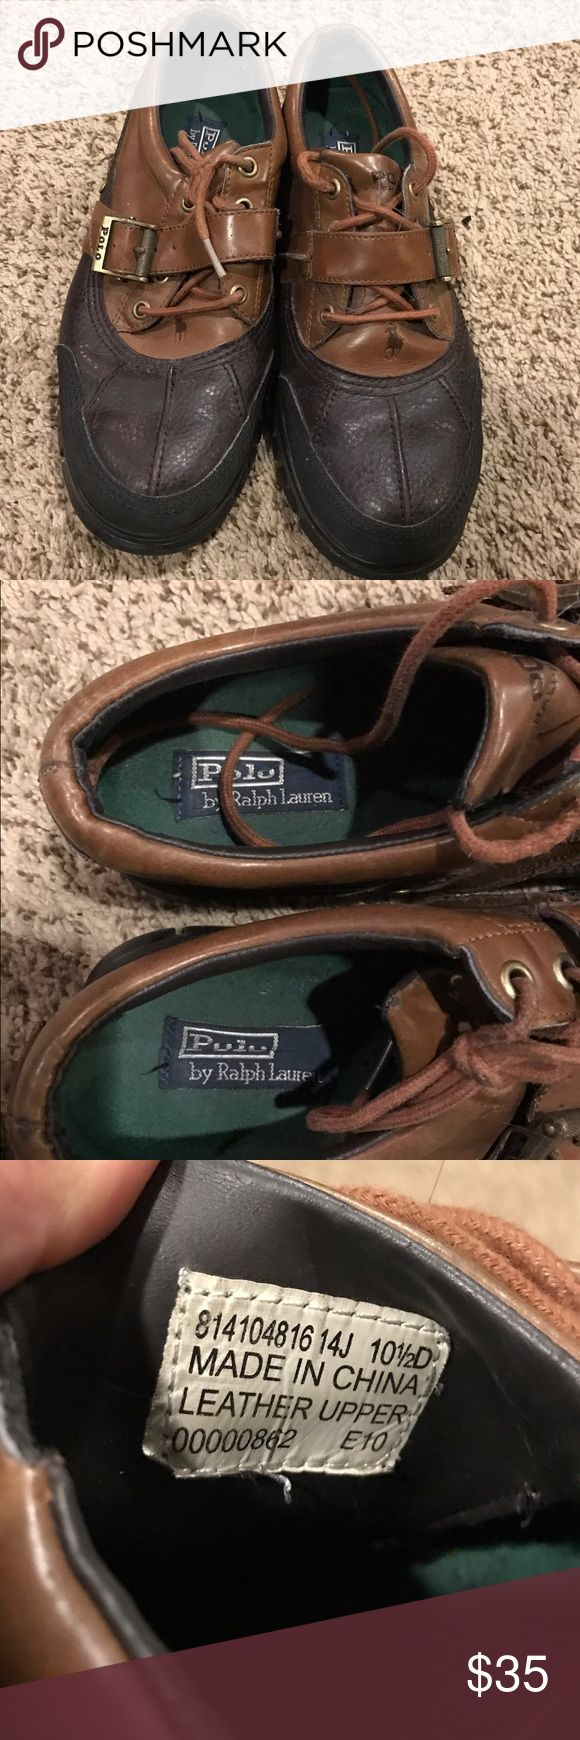 Polo by Ralph Lauren Men shoes size 10 1/2D used still good condition Polo by Ralph Lauren Shoes Boots